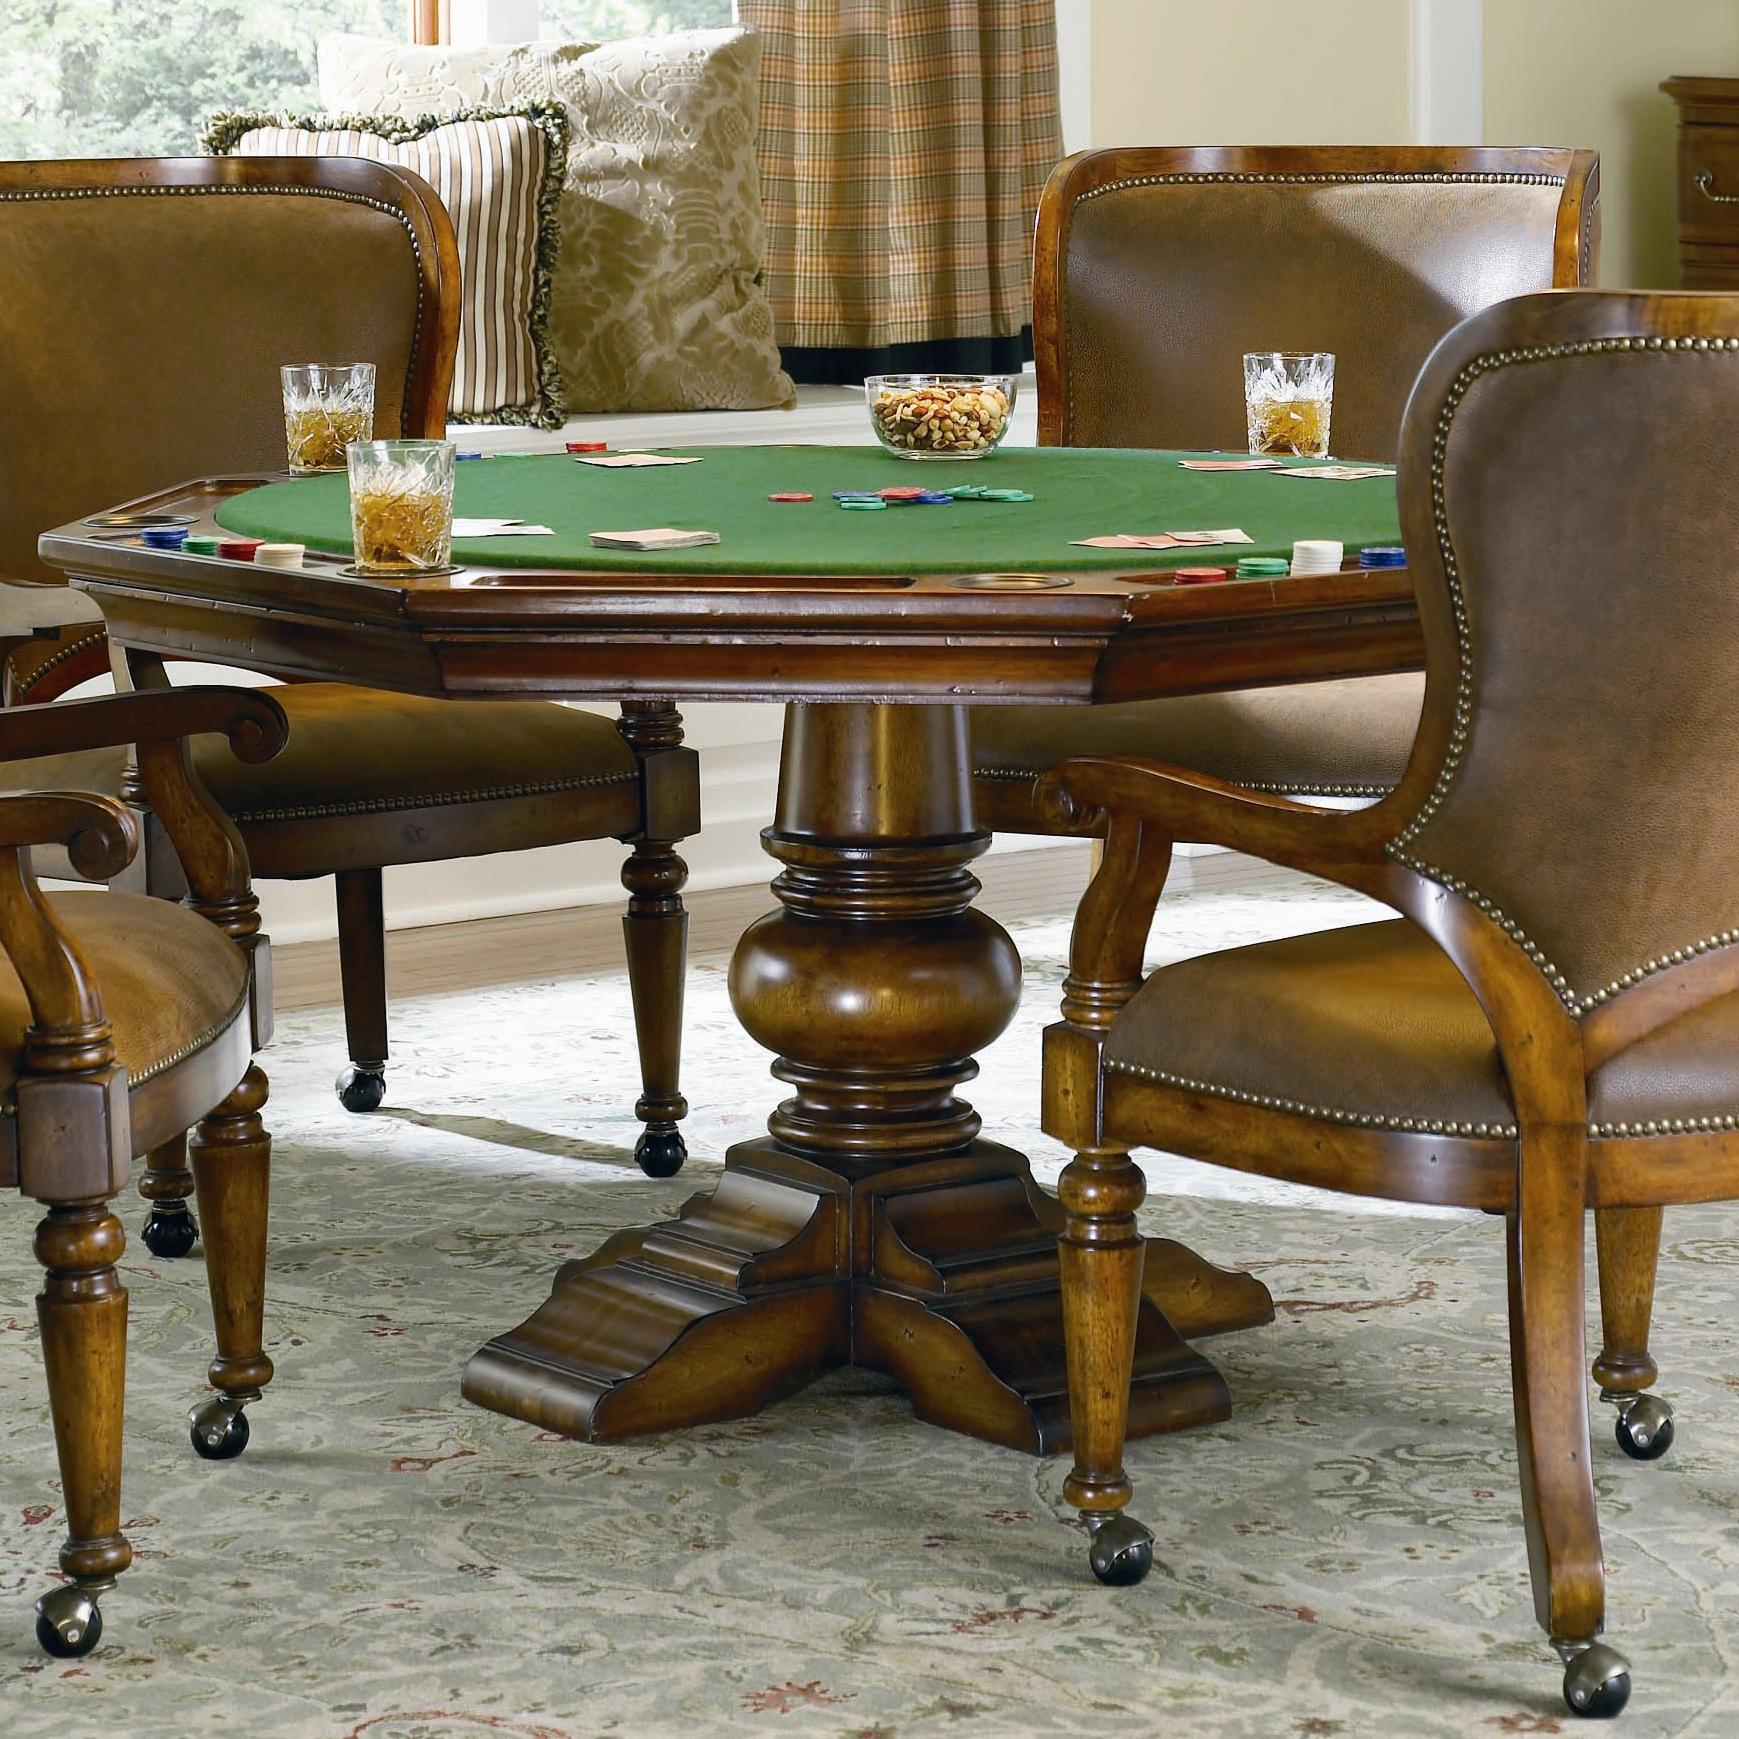 Poker Table With Chairs Hooker Furniture Waverly Place Reversible Top Poker Table